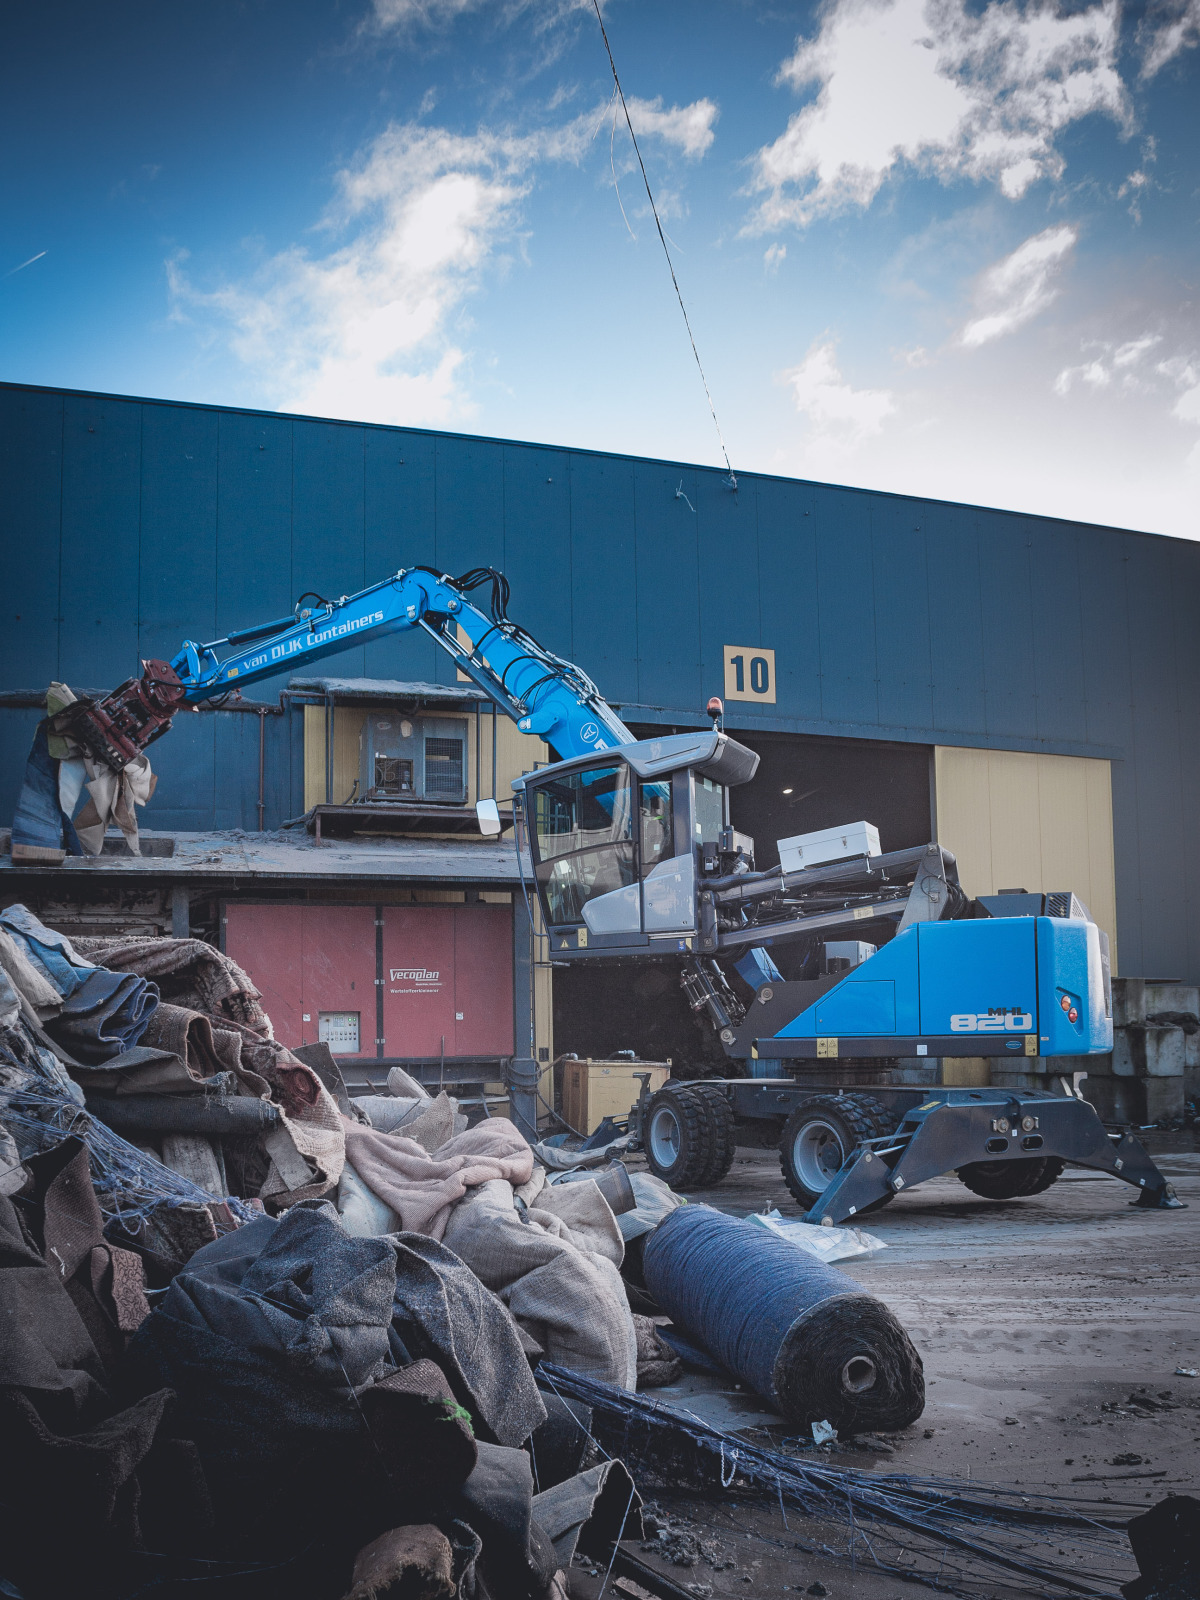 Mhl820 From Fuchs In Use At Recycler Van Dijk Containers